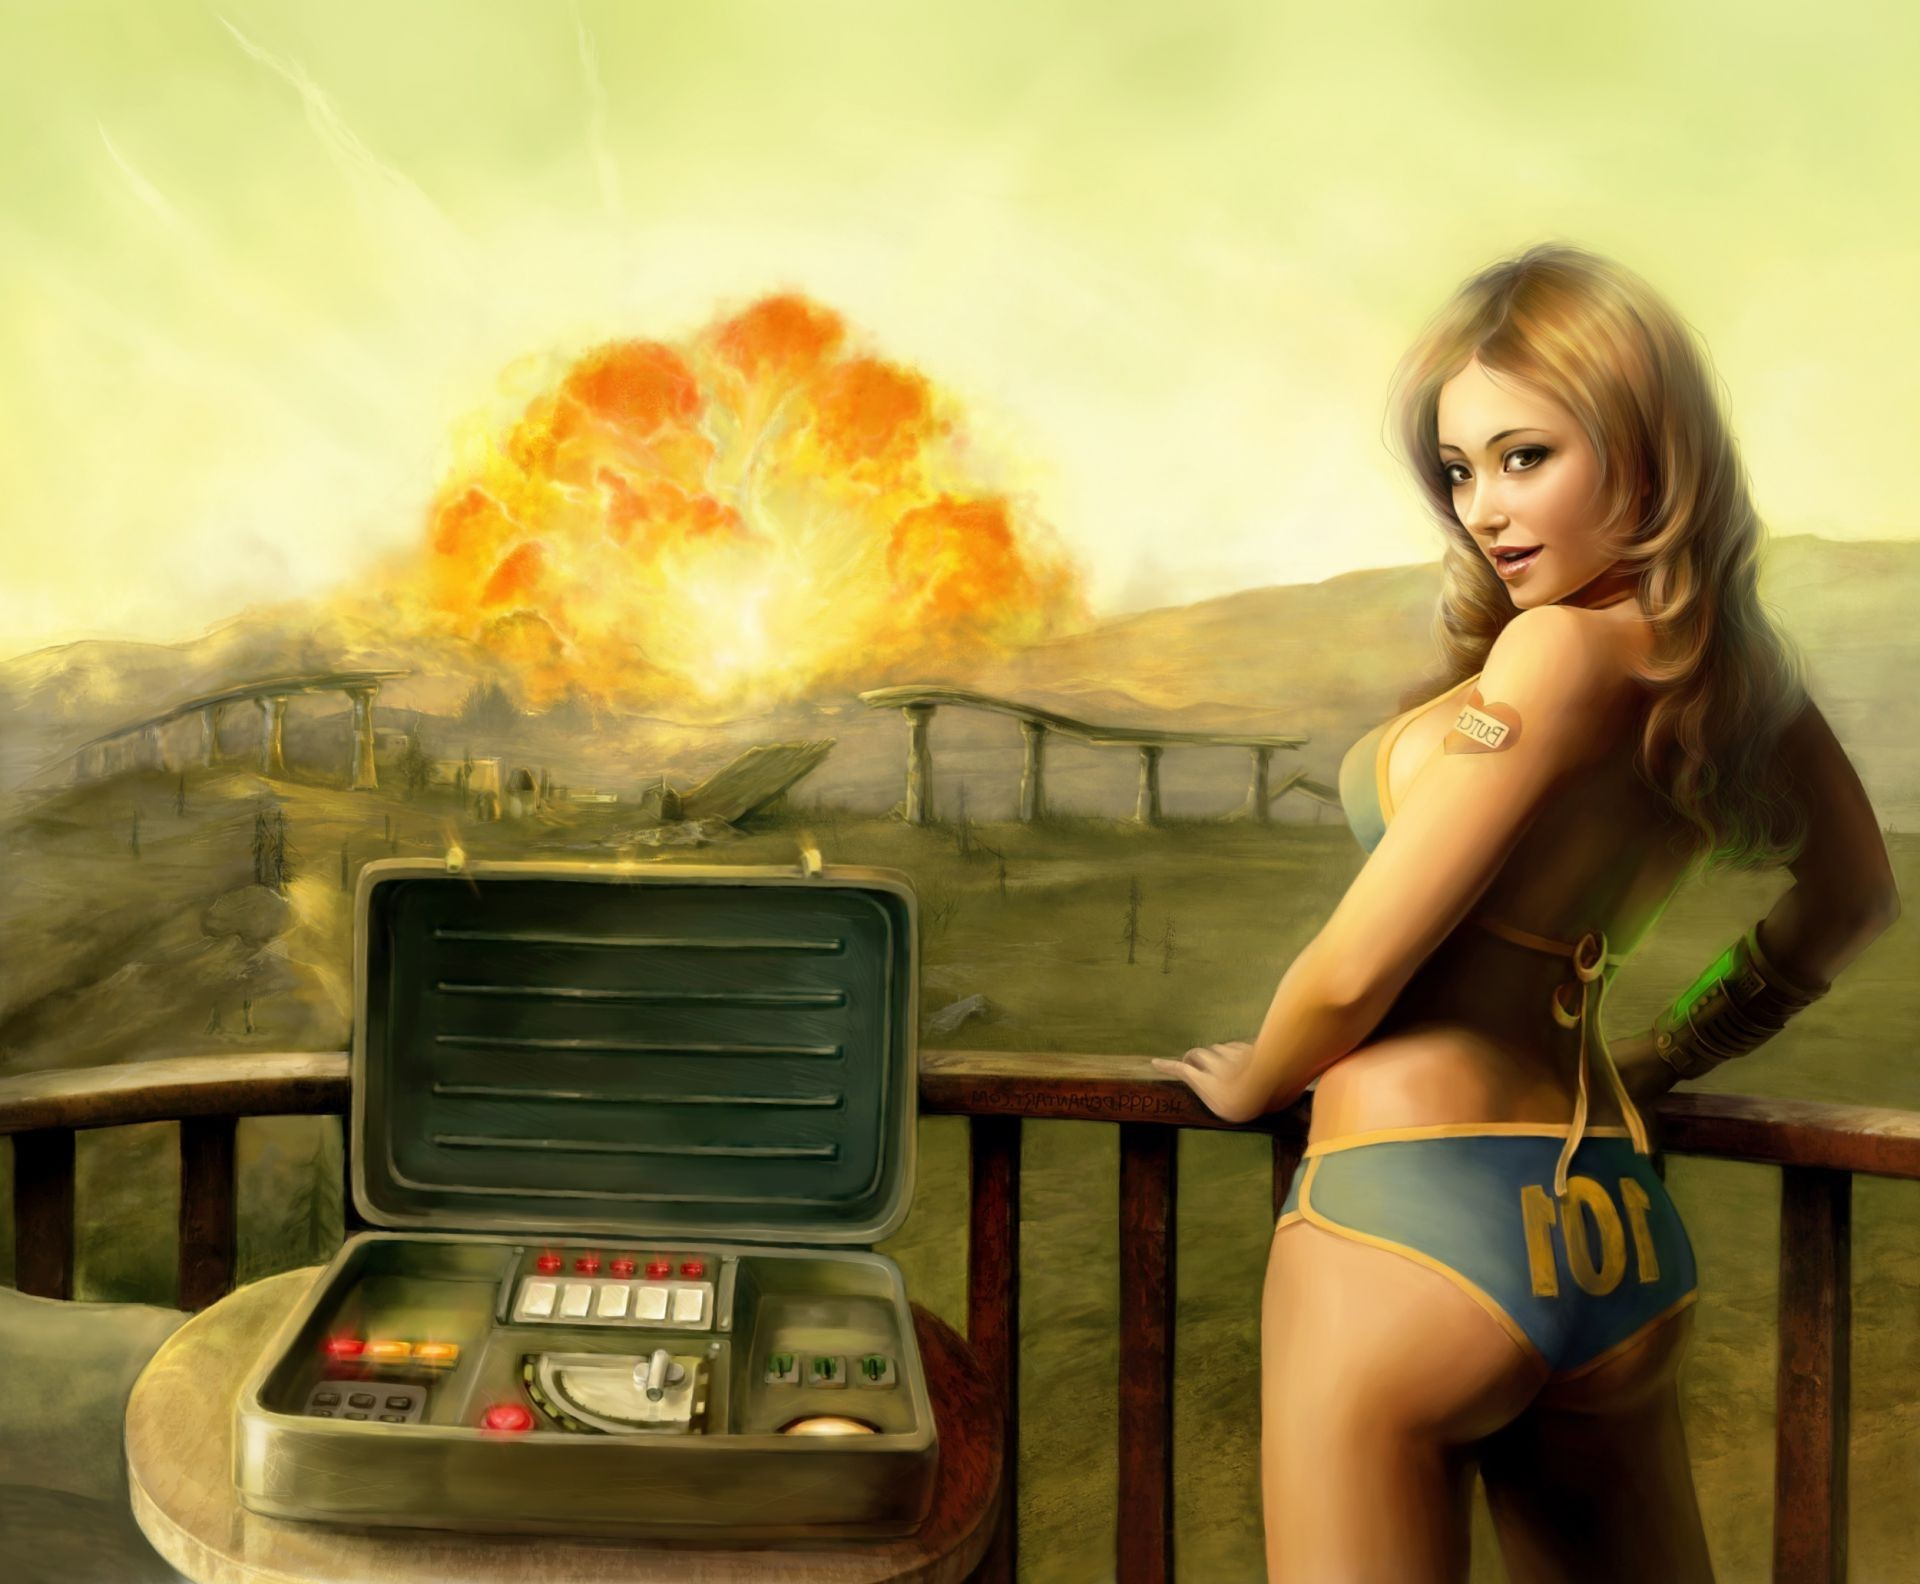 tenpenny babe Fallout 3 girl explosion